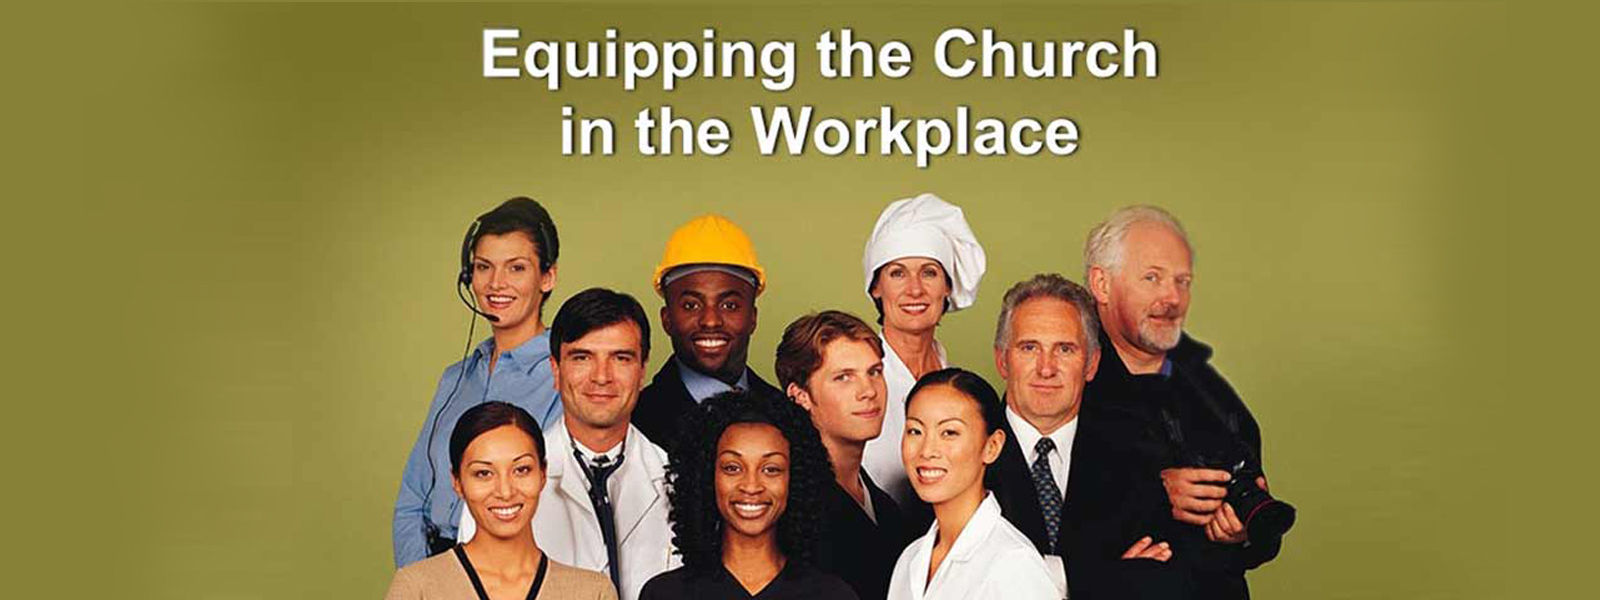 Equipping the Church in the Workplace